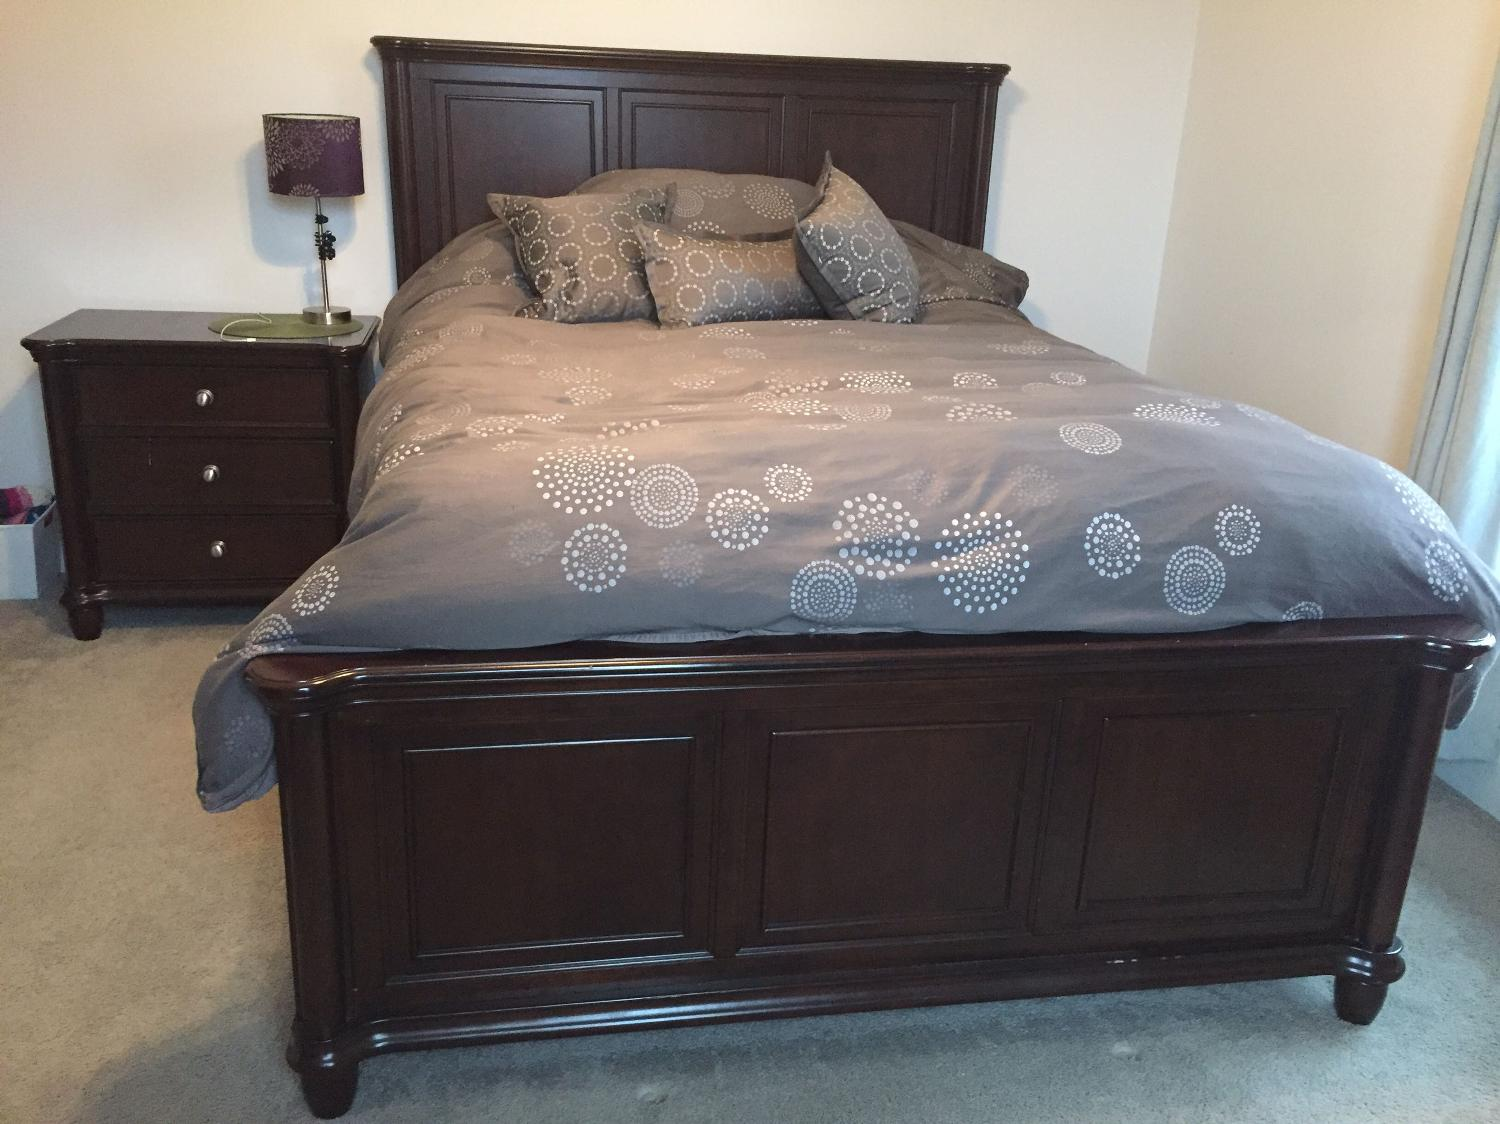 Best 3 Piece Bedroom Set With Queen Mattress And Box Spring For Sale In Ajax Ontario For 2017